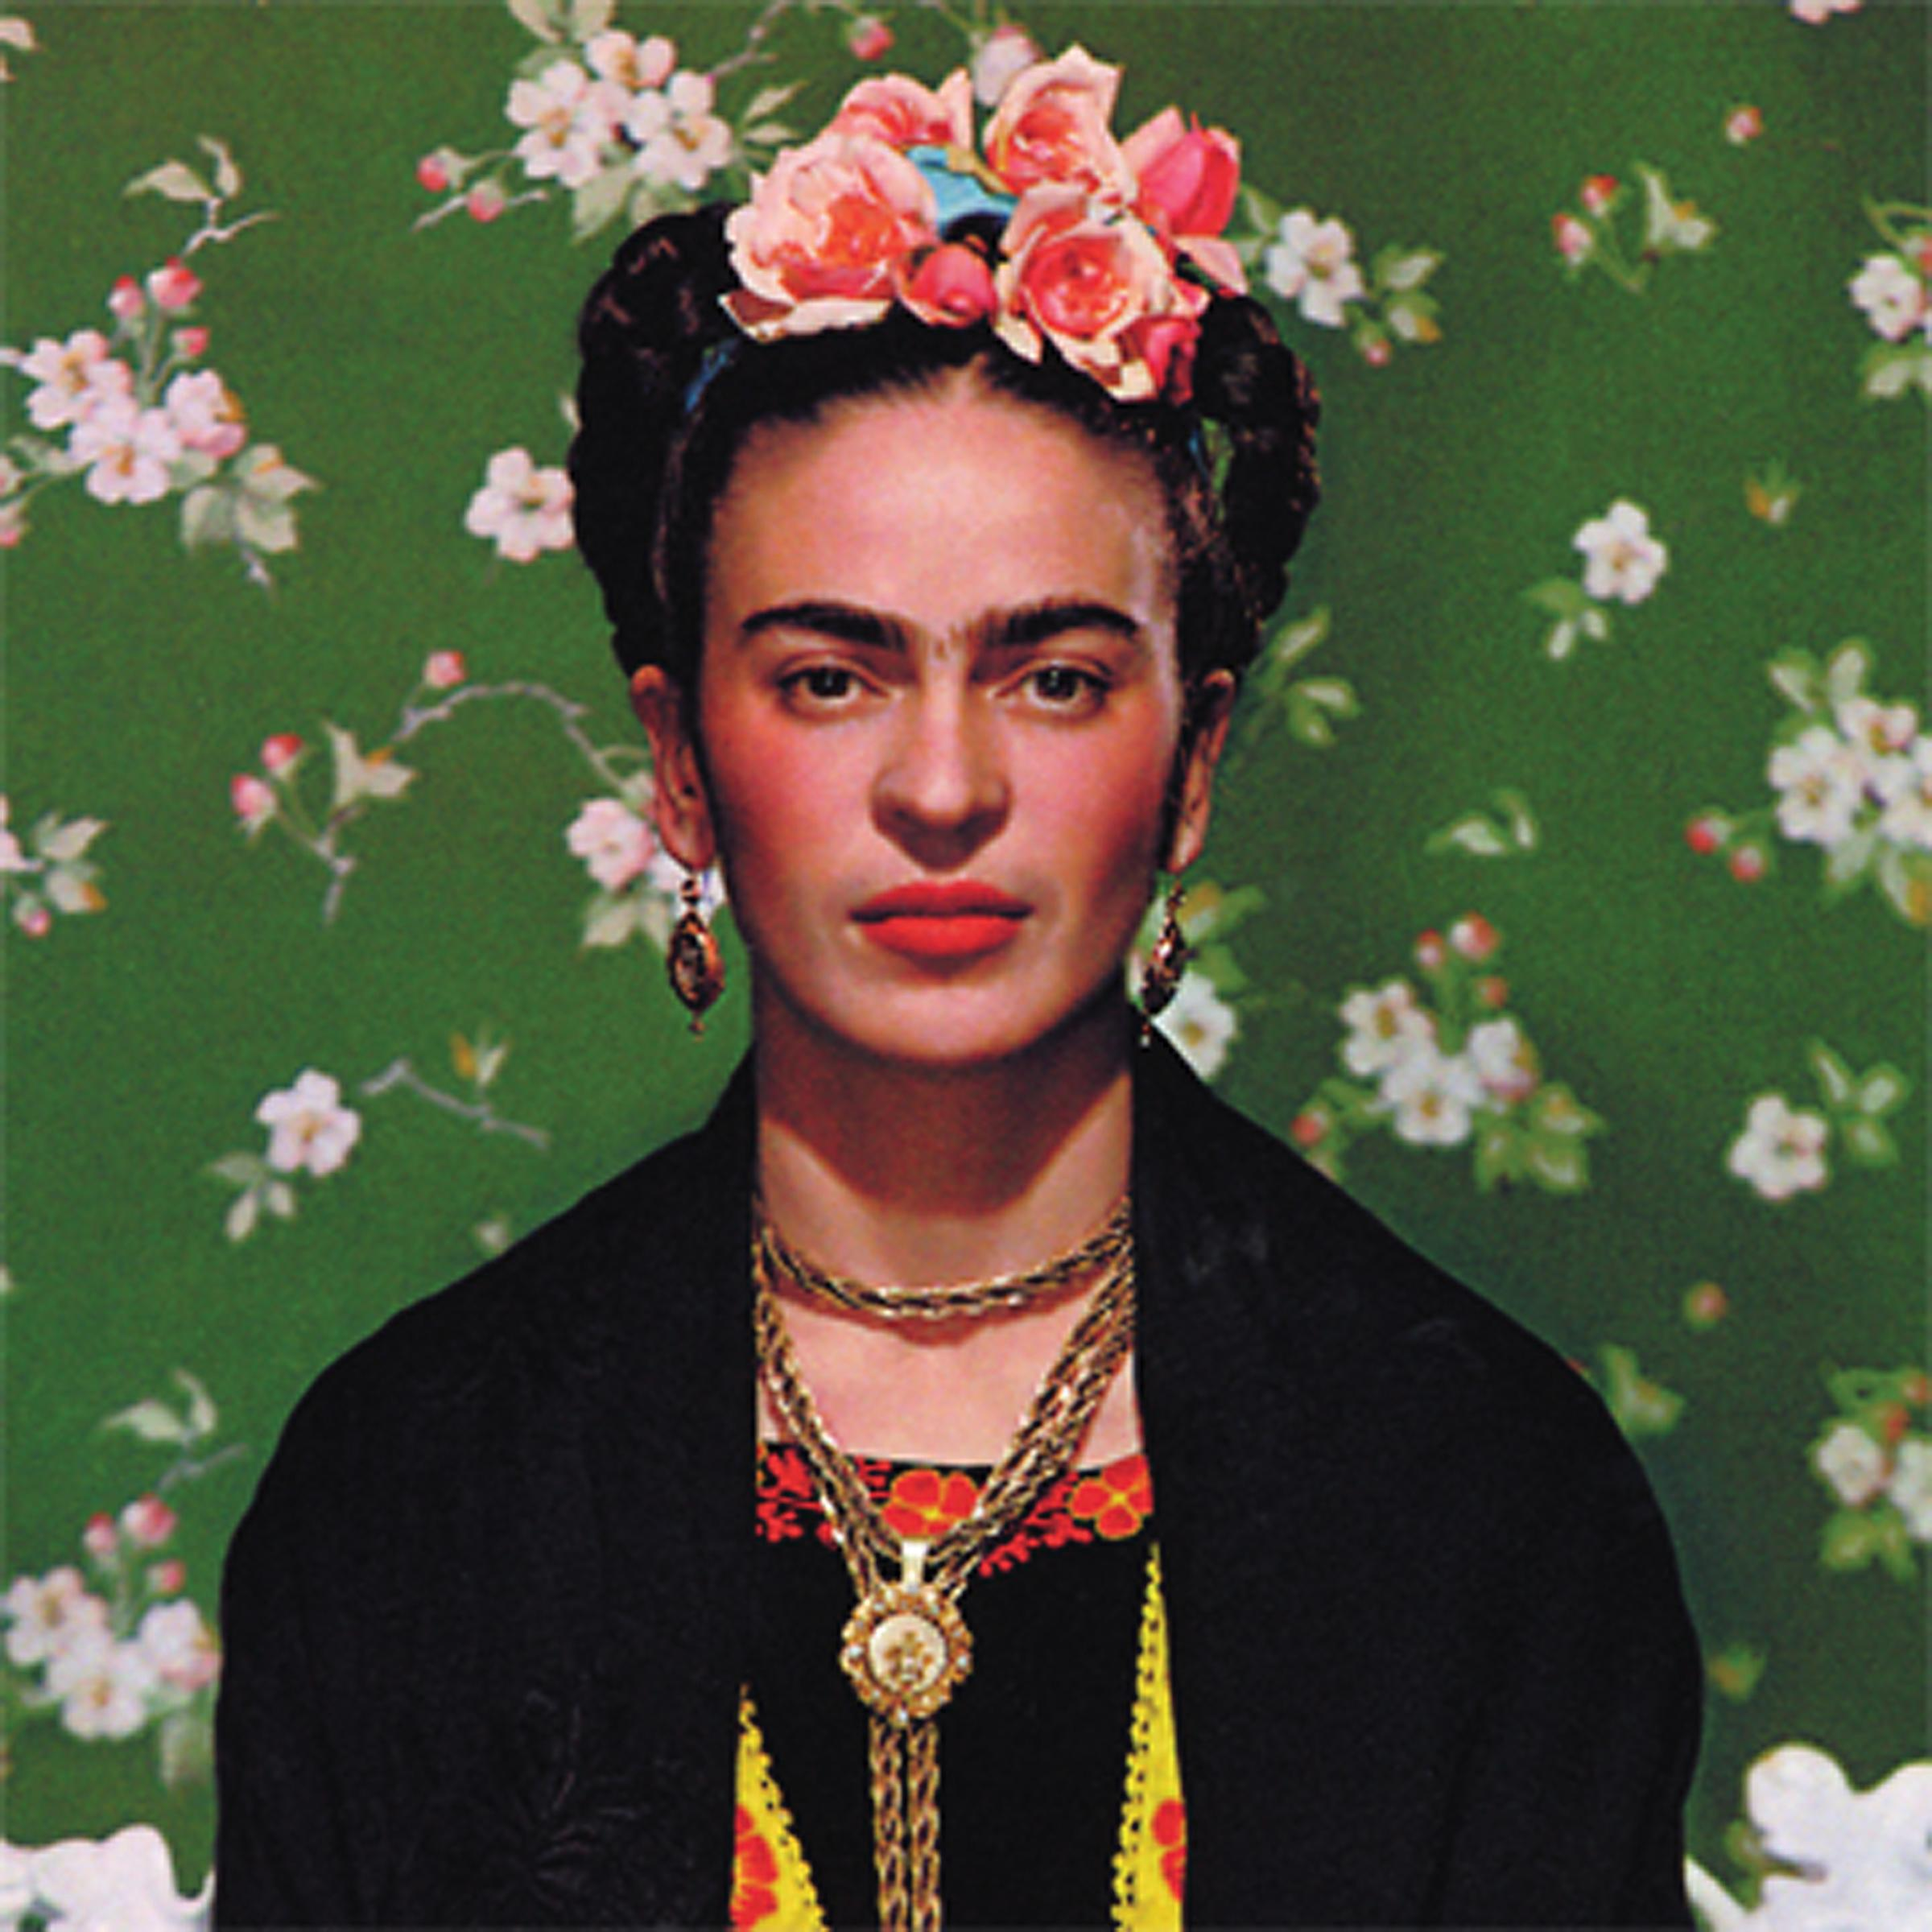 Frida: The Mexican painter